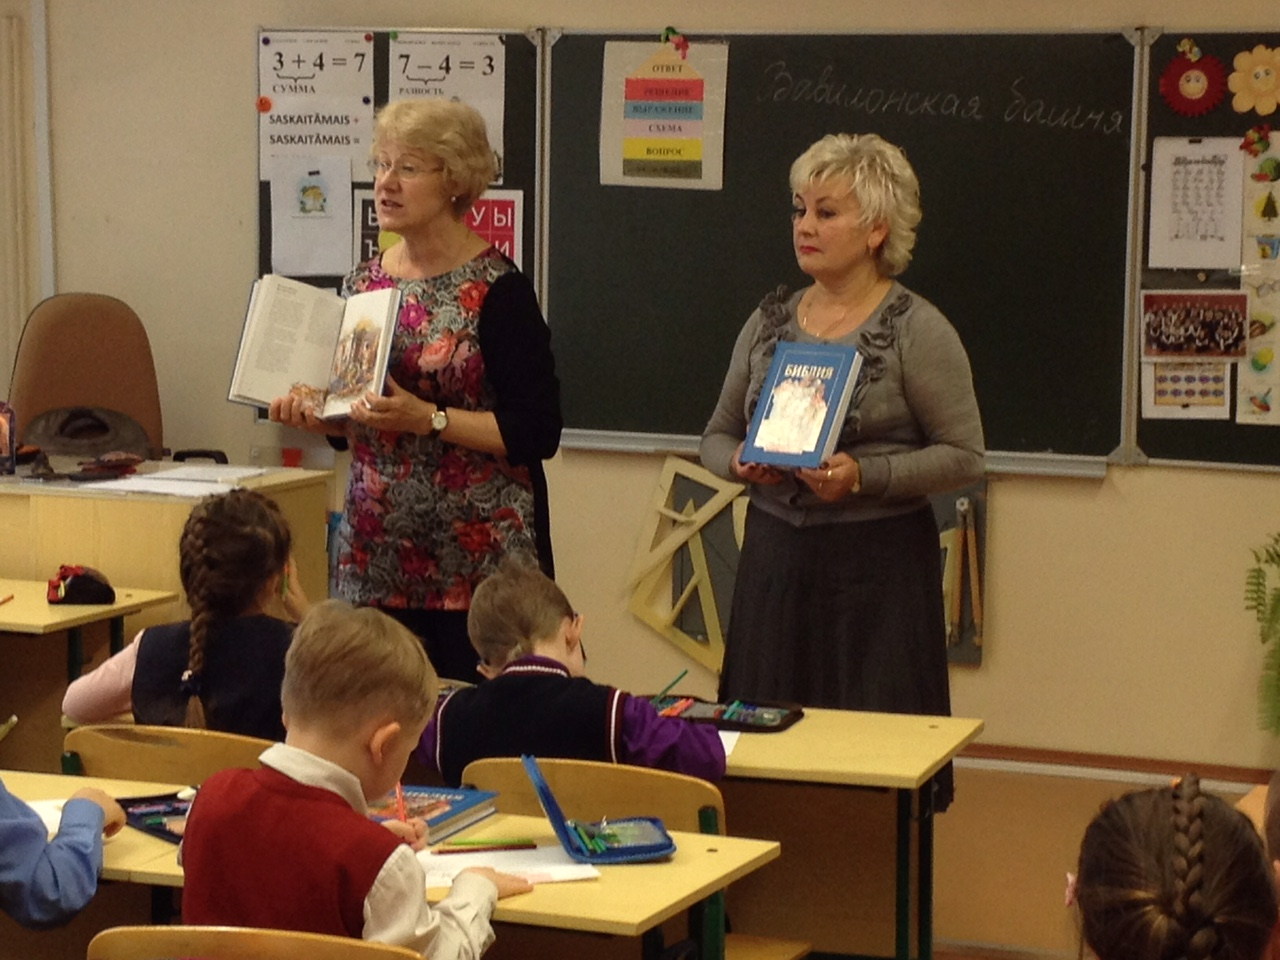 Dr. Olga assists a teacher in a classroom in Samara, Russia